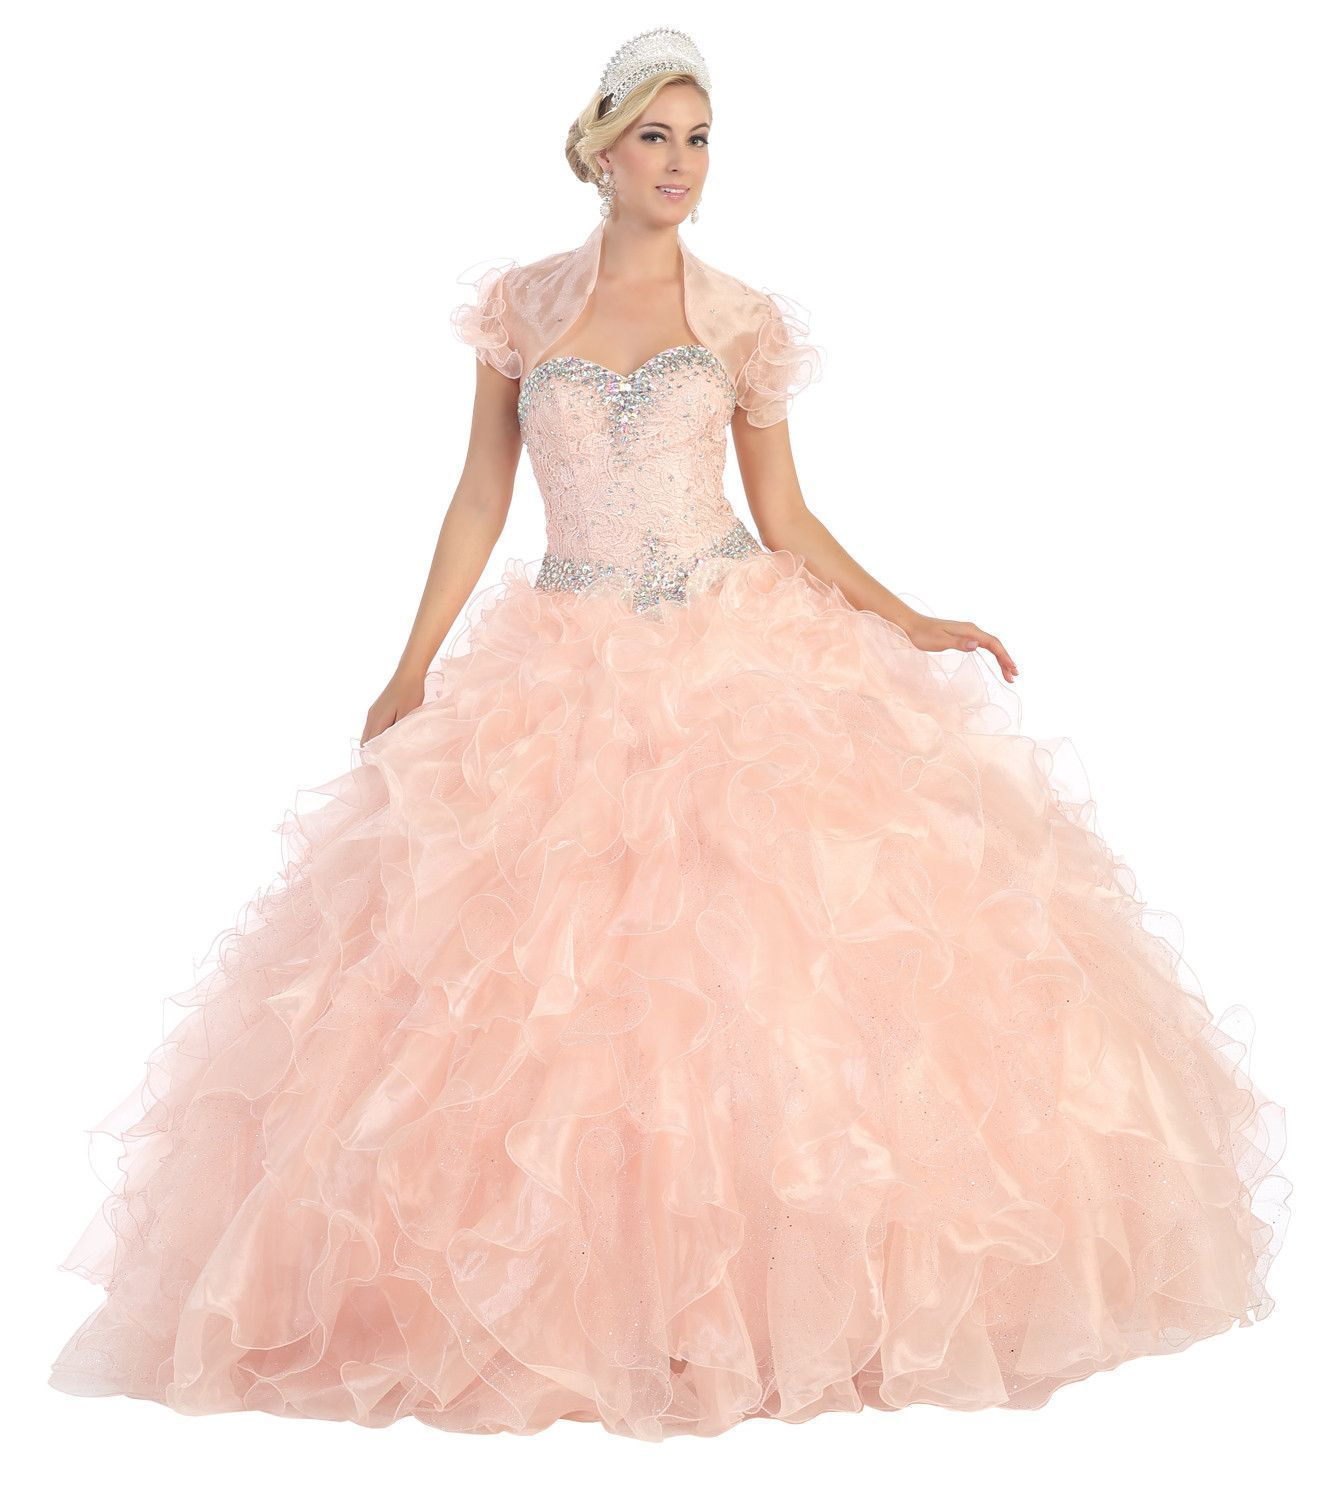 Thedressoutlet quinceanera formal prom dress homecoming long gown